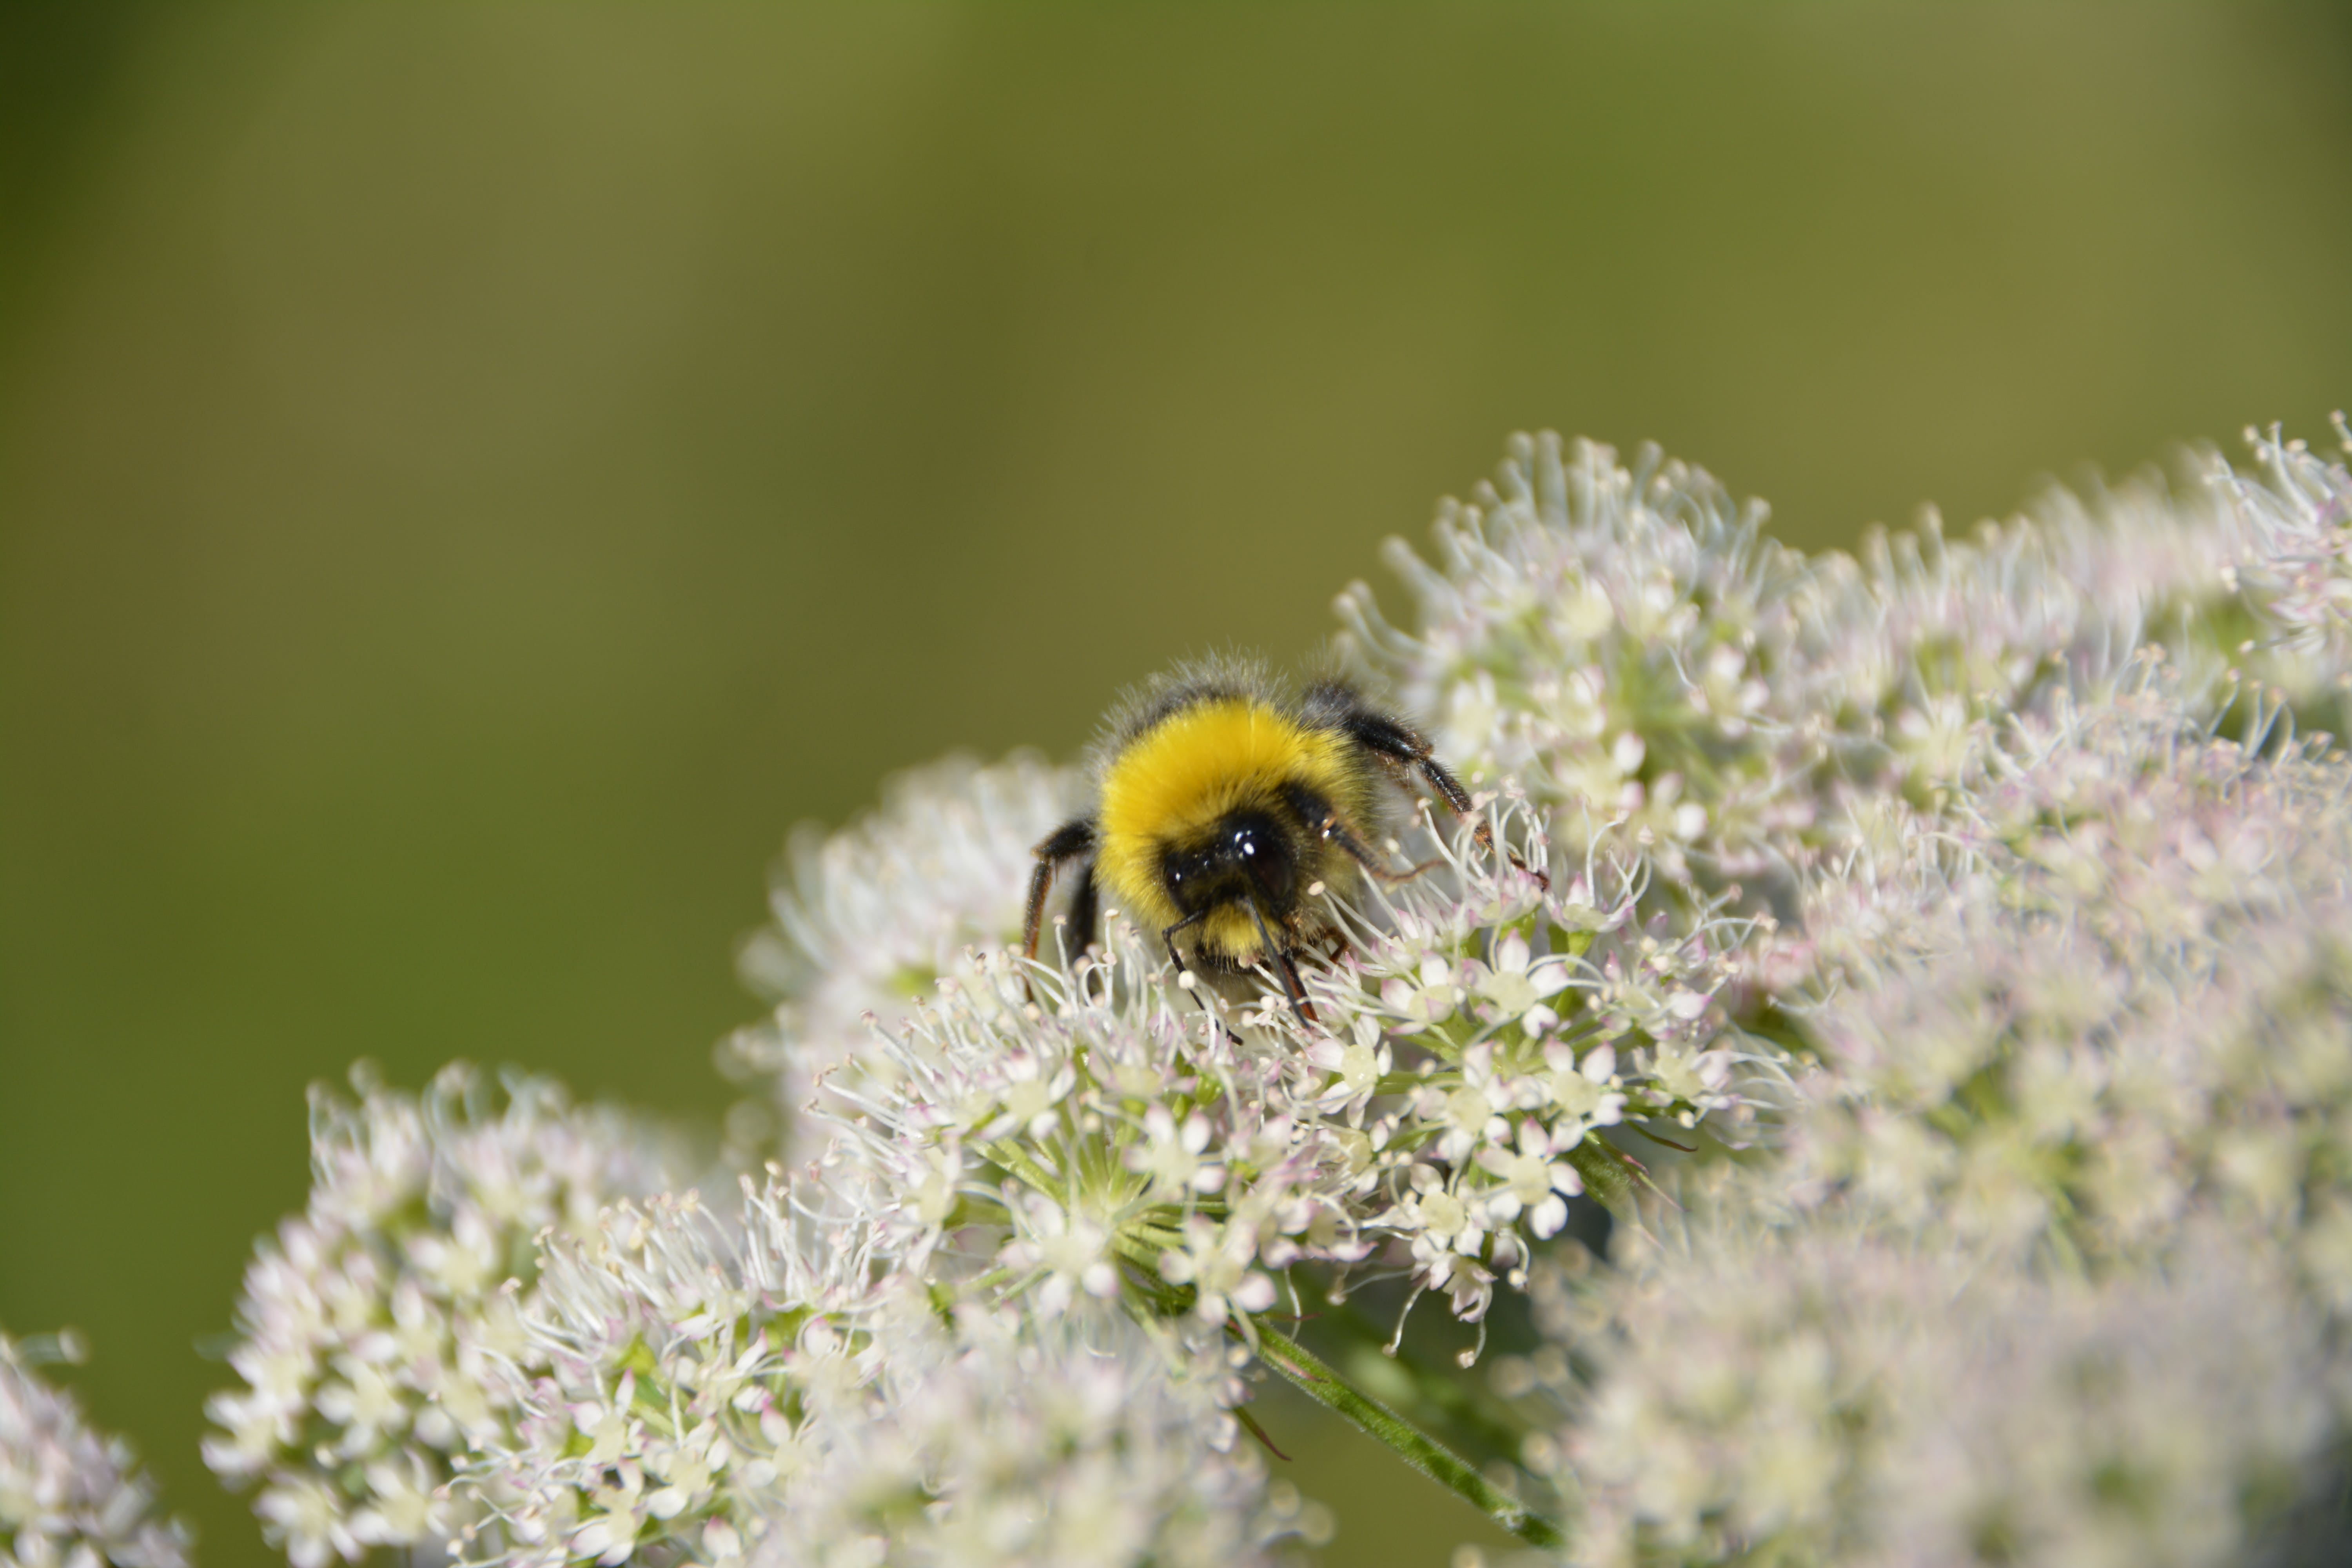 Bumble Bee on White Flowers